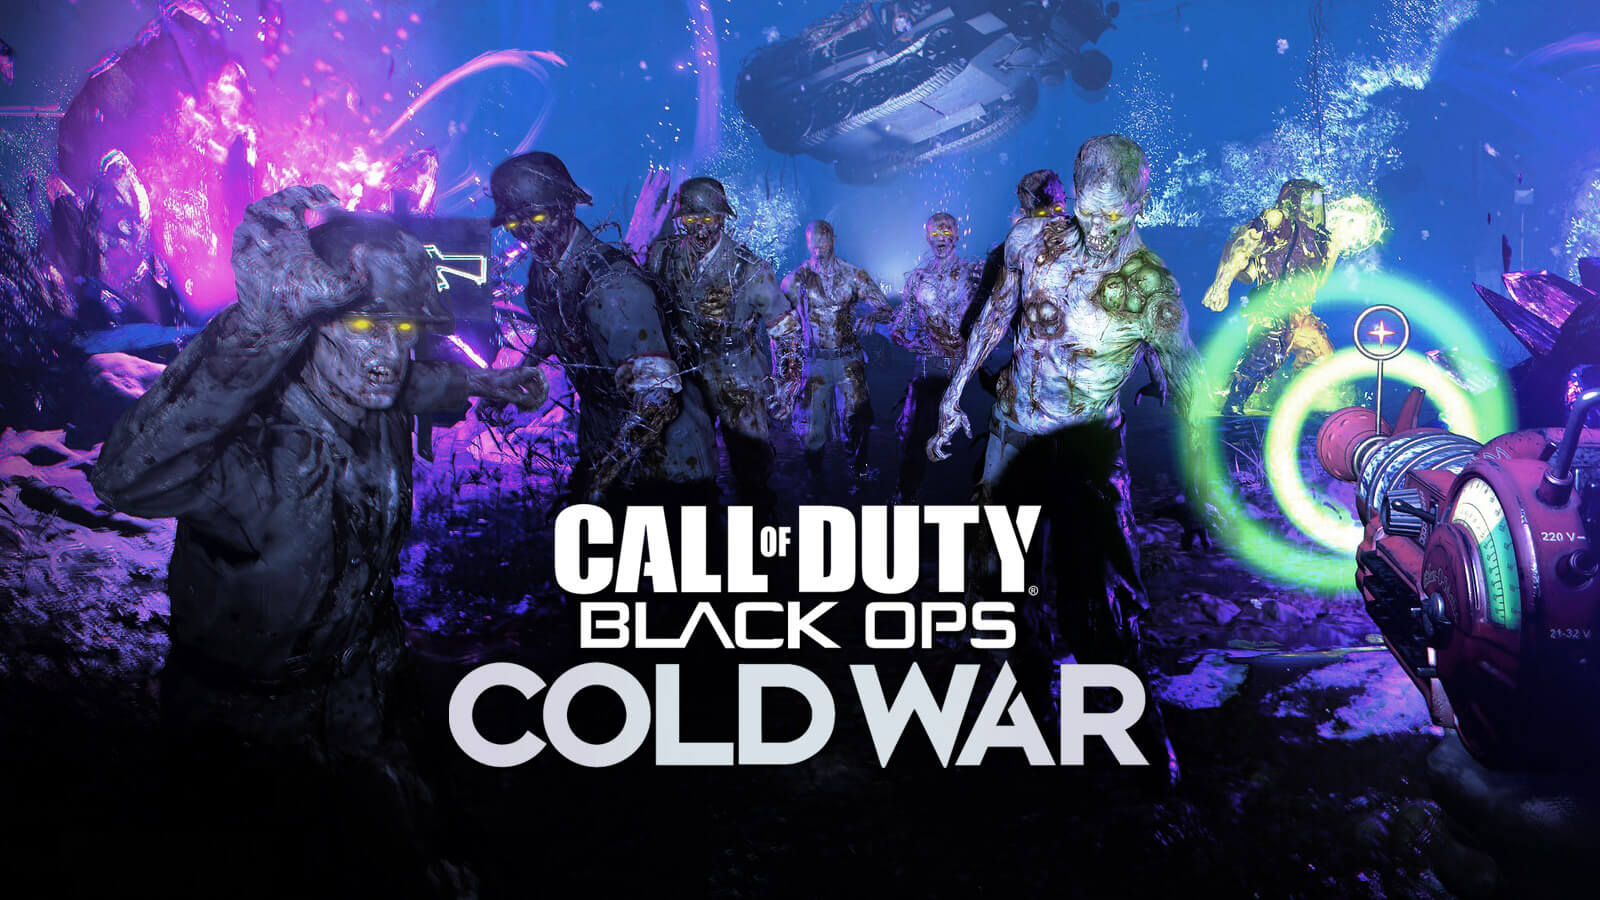 Call Of Duty Black Ops Cold War Zombies Mode Revealed